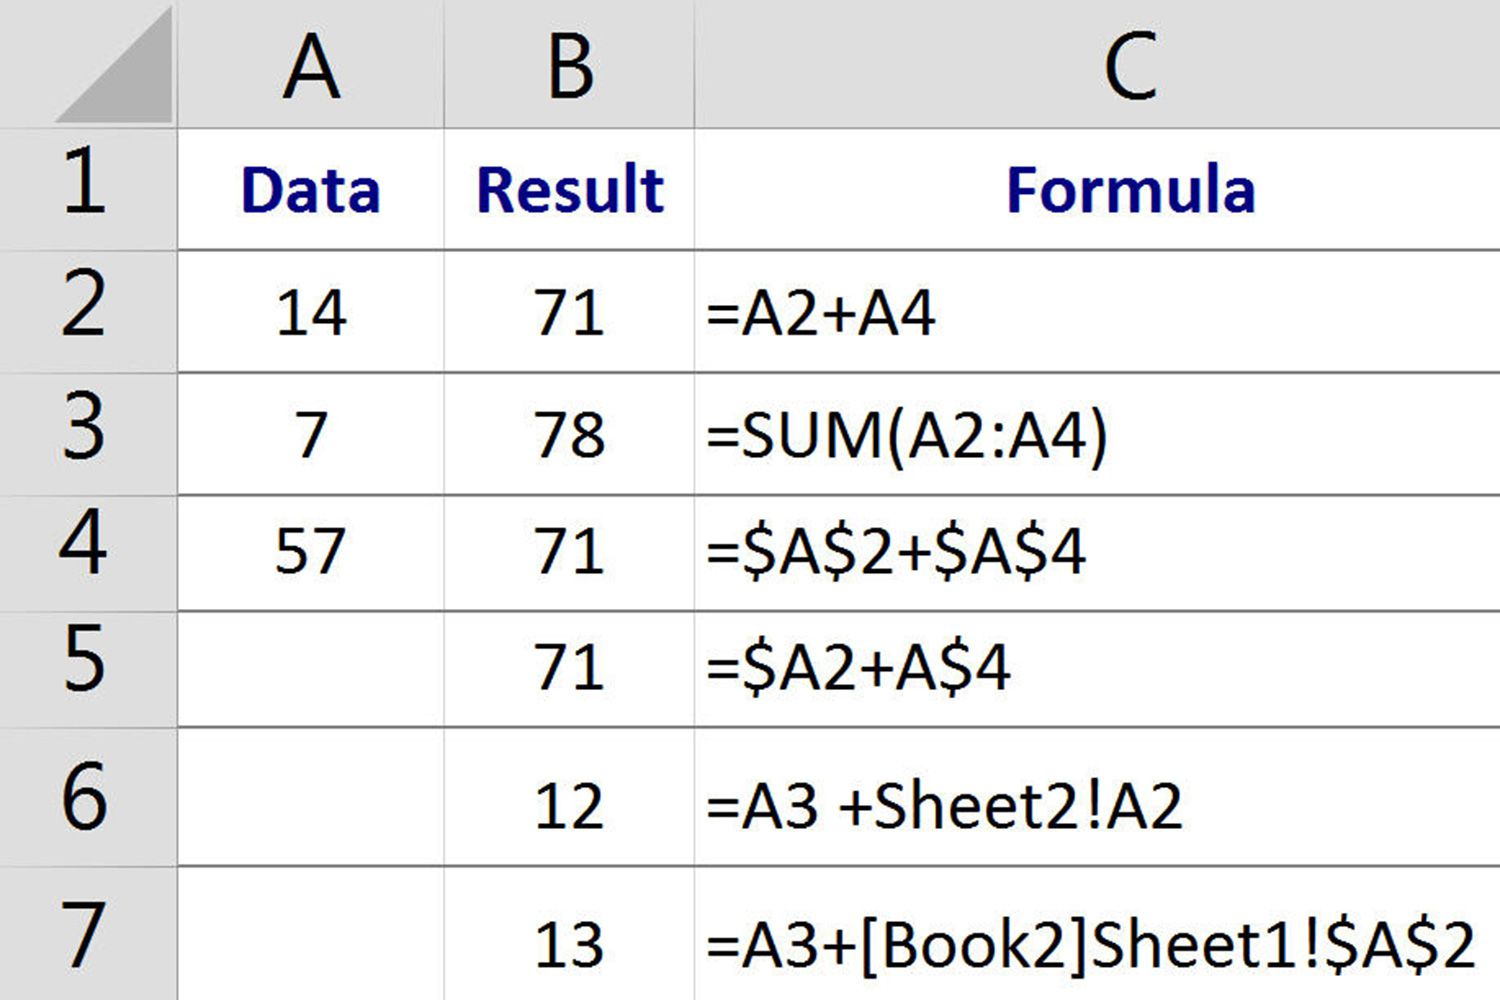 How to make an excel formula absolute - How To Make An Excel Formula Absolute 57